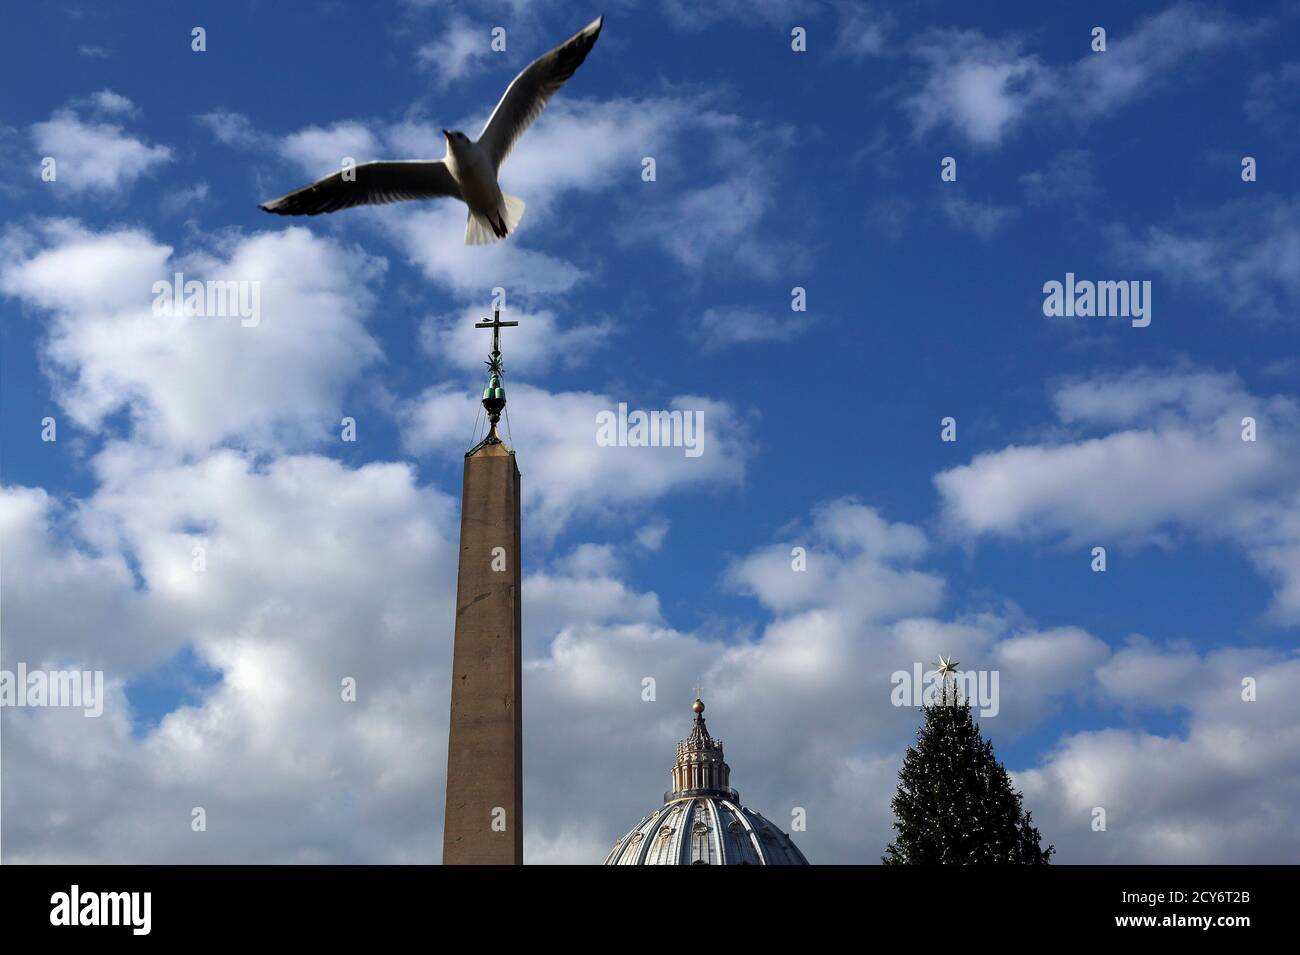 A seagull flies as Pope Francis leads the Angelus prayer from the window of the Apostolic Palace in Saint Peter's Square at the Vatican December 8, 2013. REUTERS/Alessandro Bianchi (VATICAN - Tags: RELIGION ANIMALS) Foto Stock